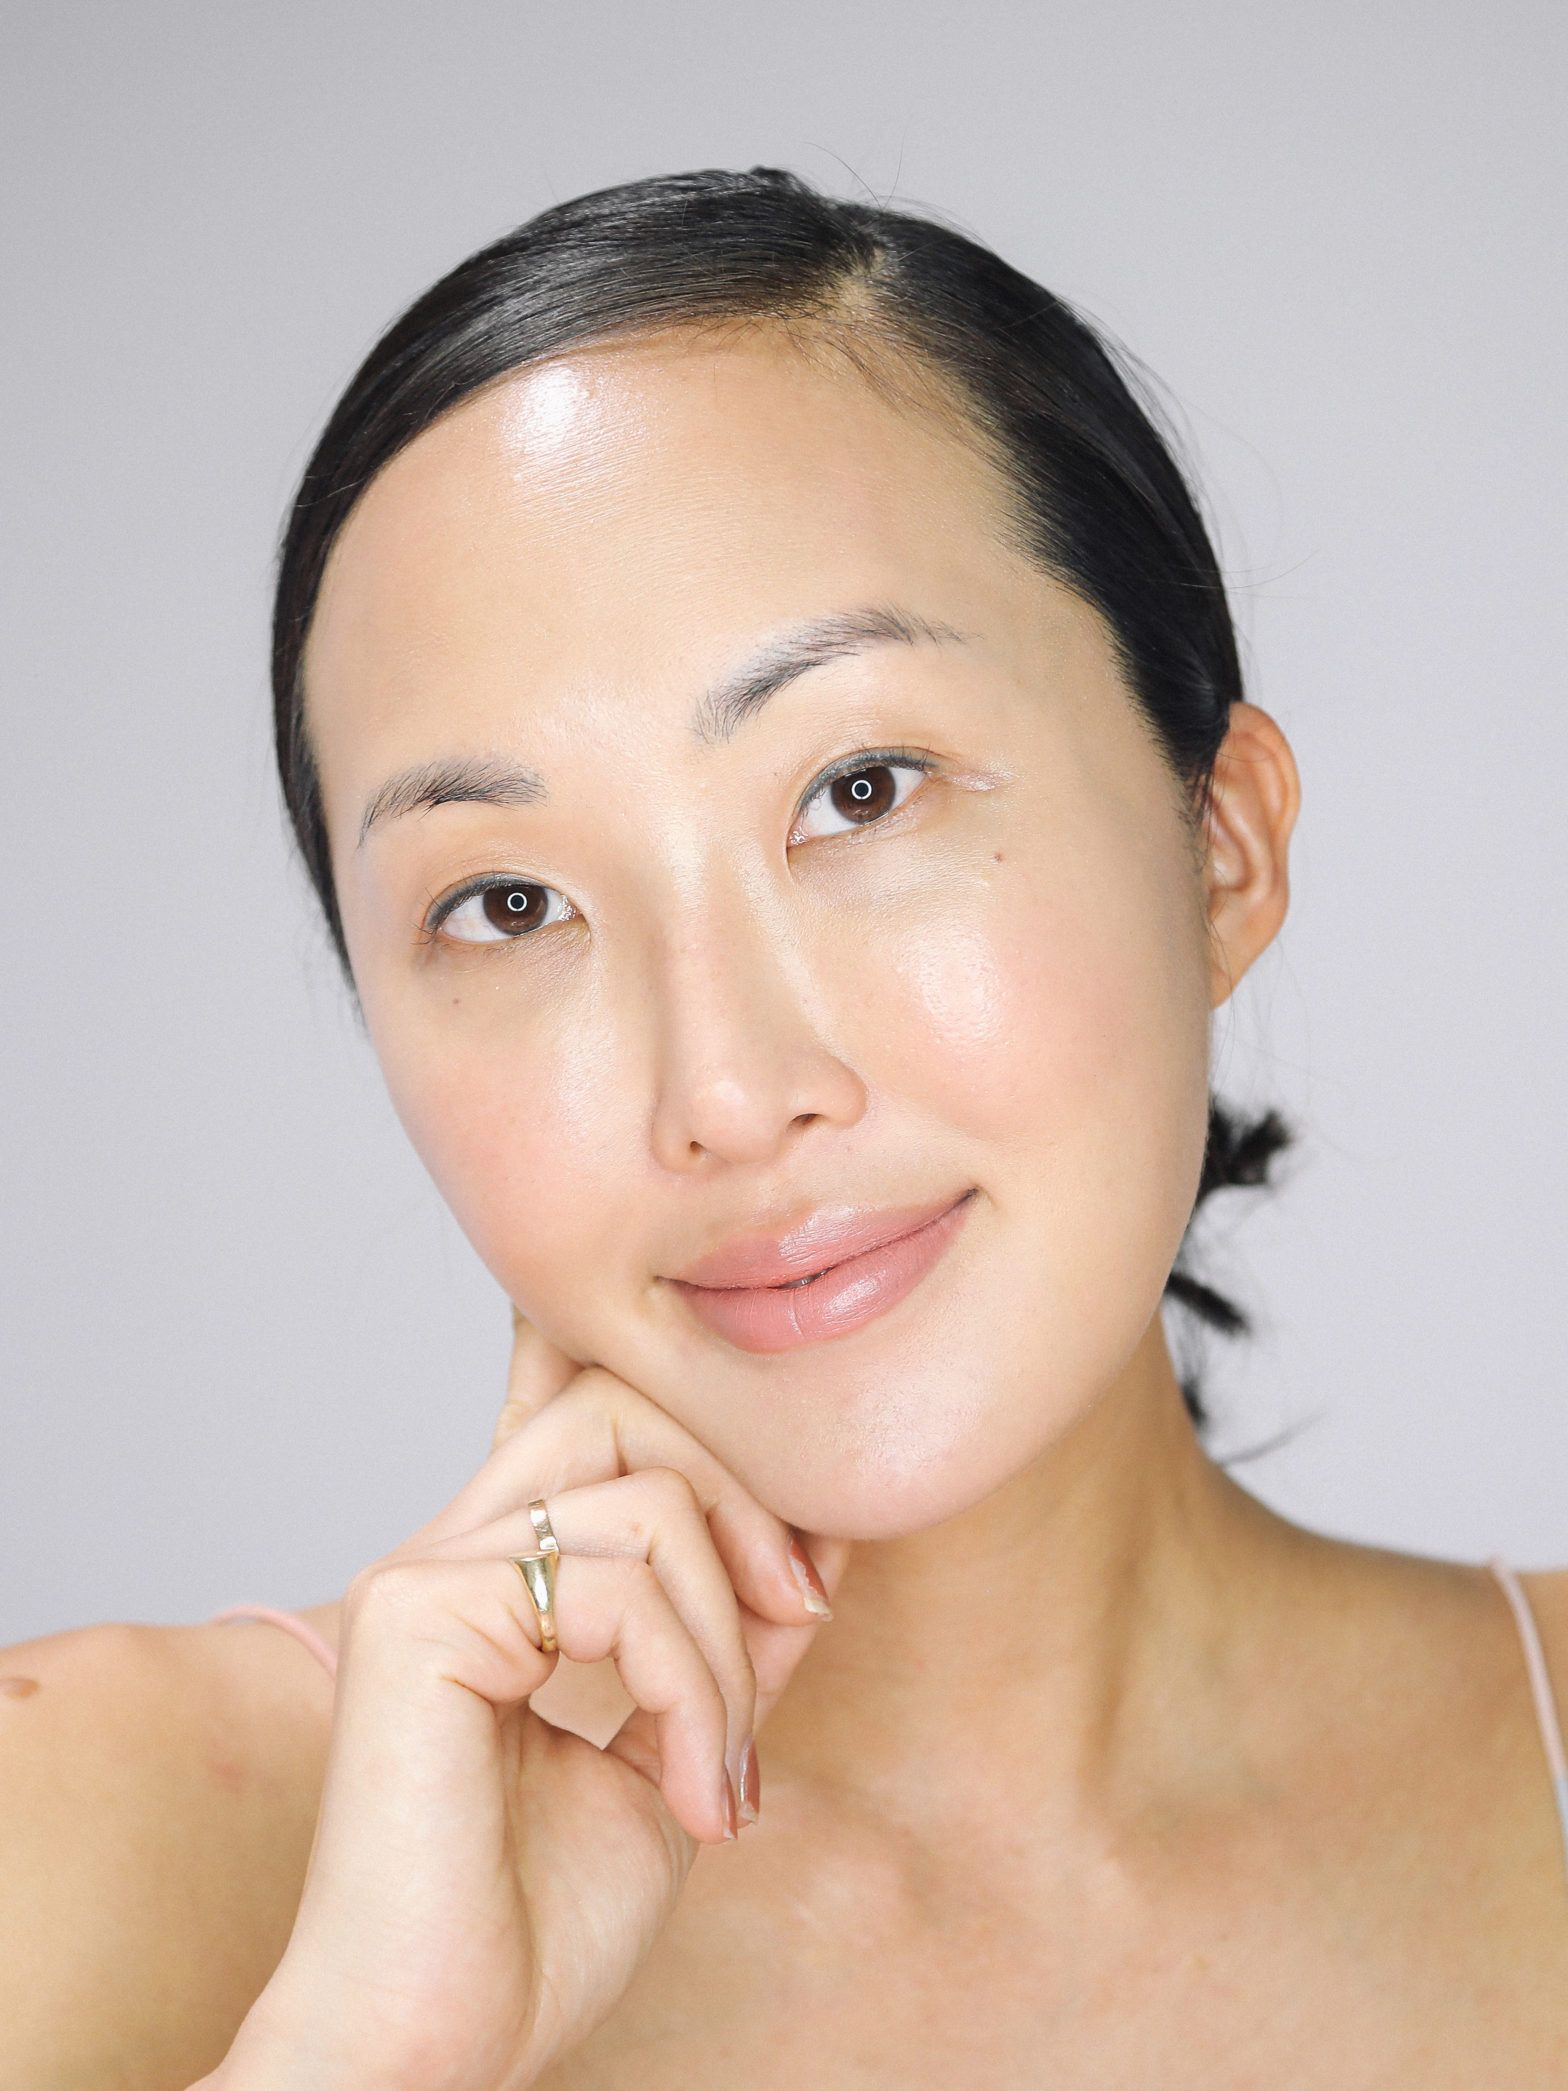 How to Look Beautiful Without Makeup Without makeup